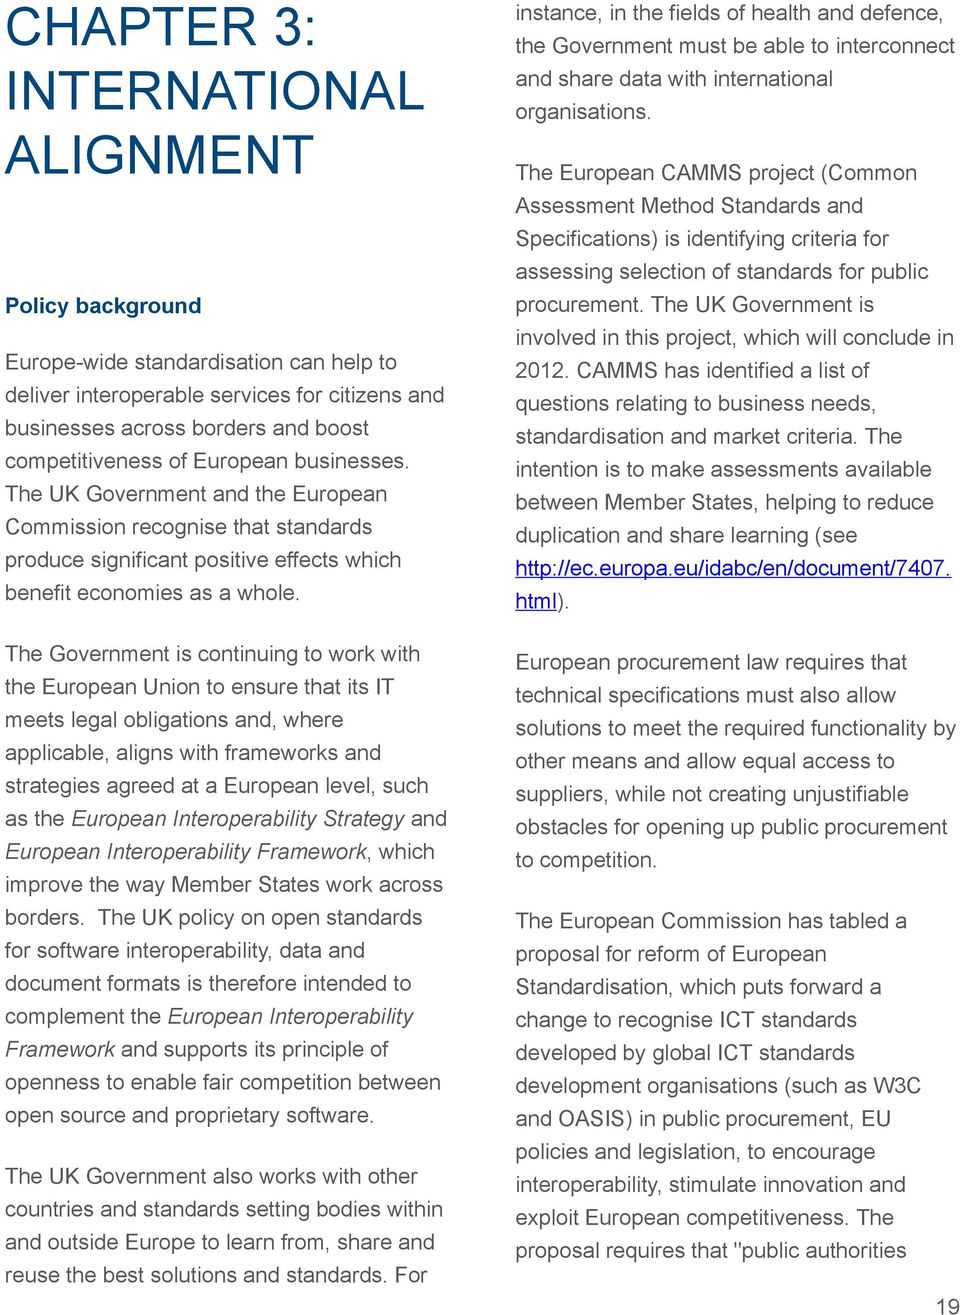 The Government is continuing to work with the European Union to ensure that its IT meets legal obligations and, where applicable, aligns with frameworks and strategies agreed at a European level,